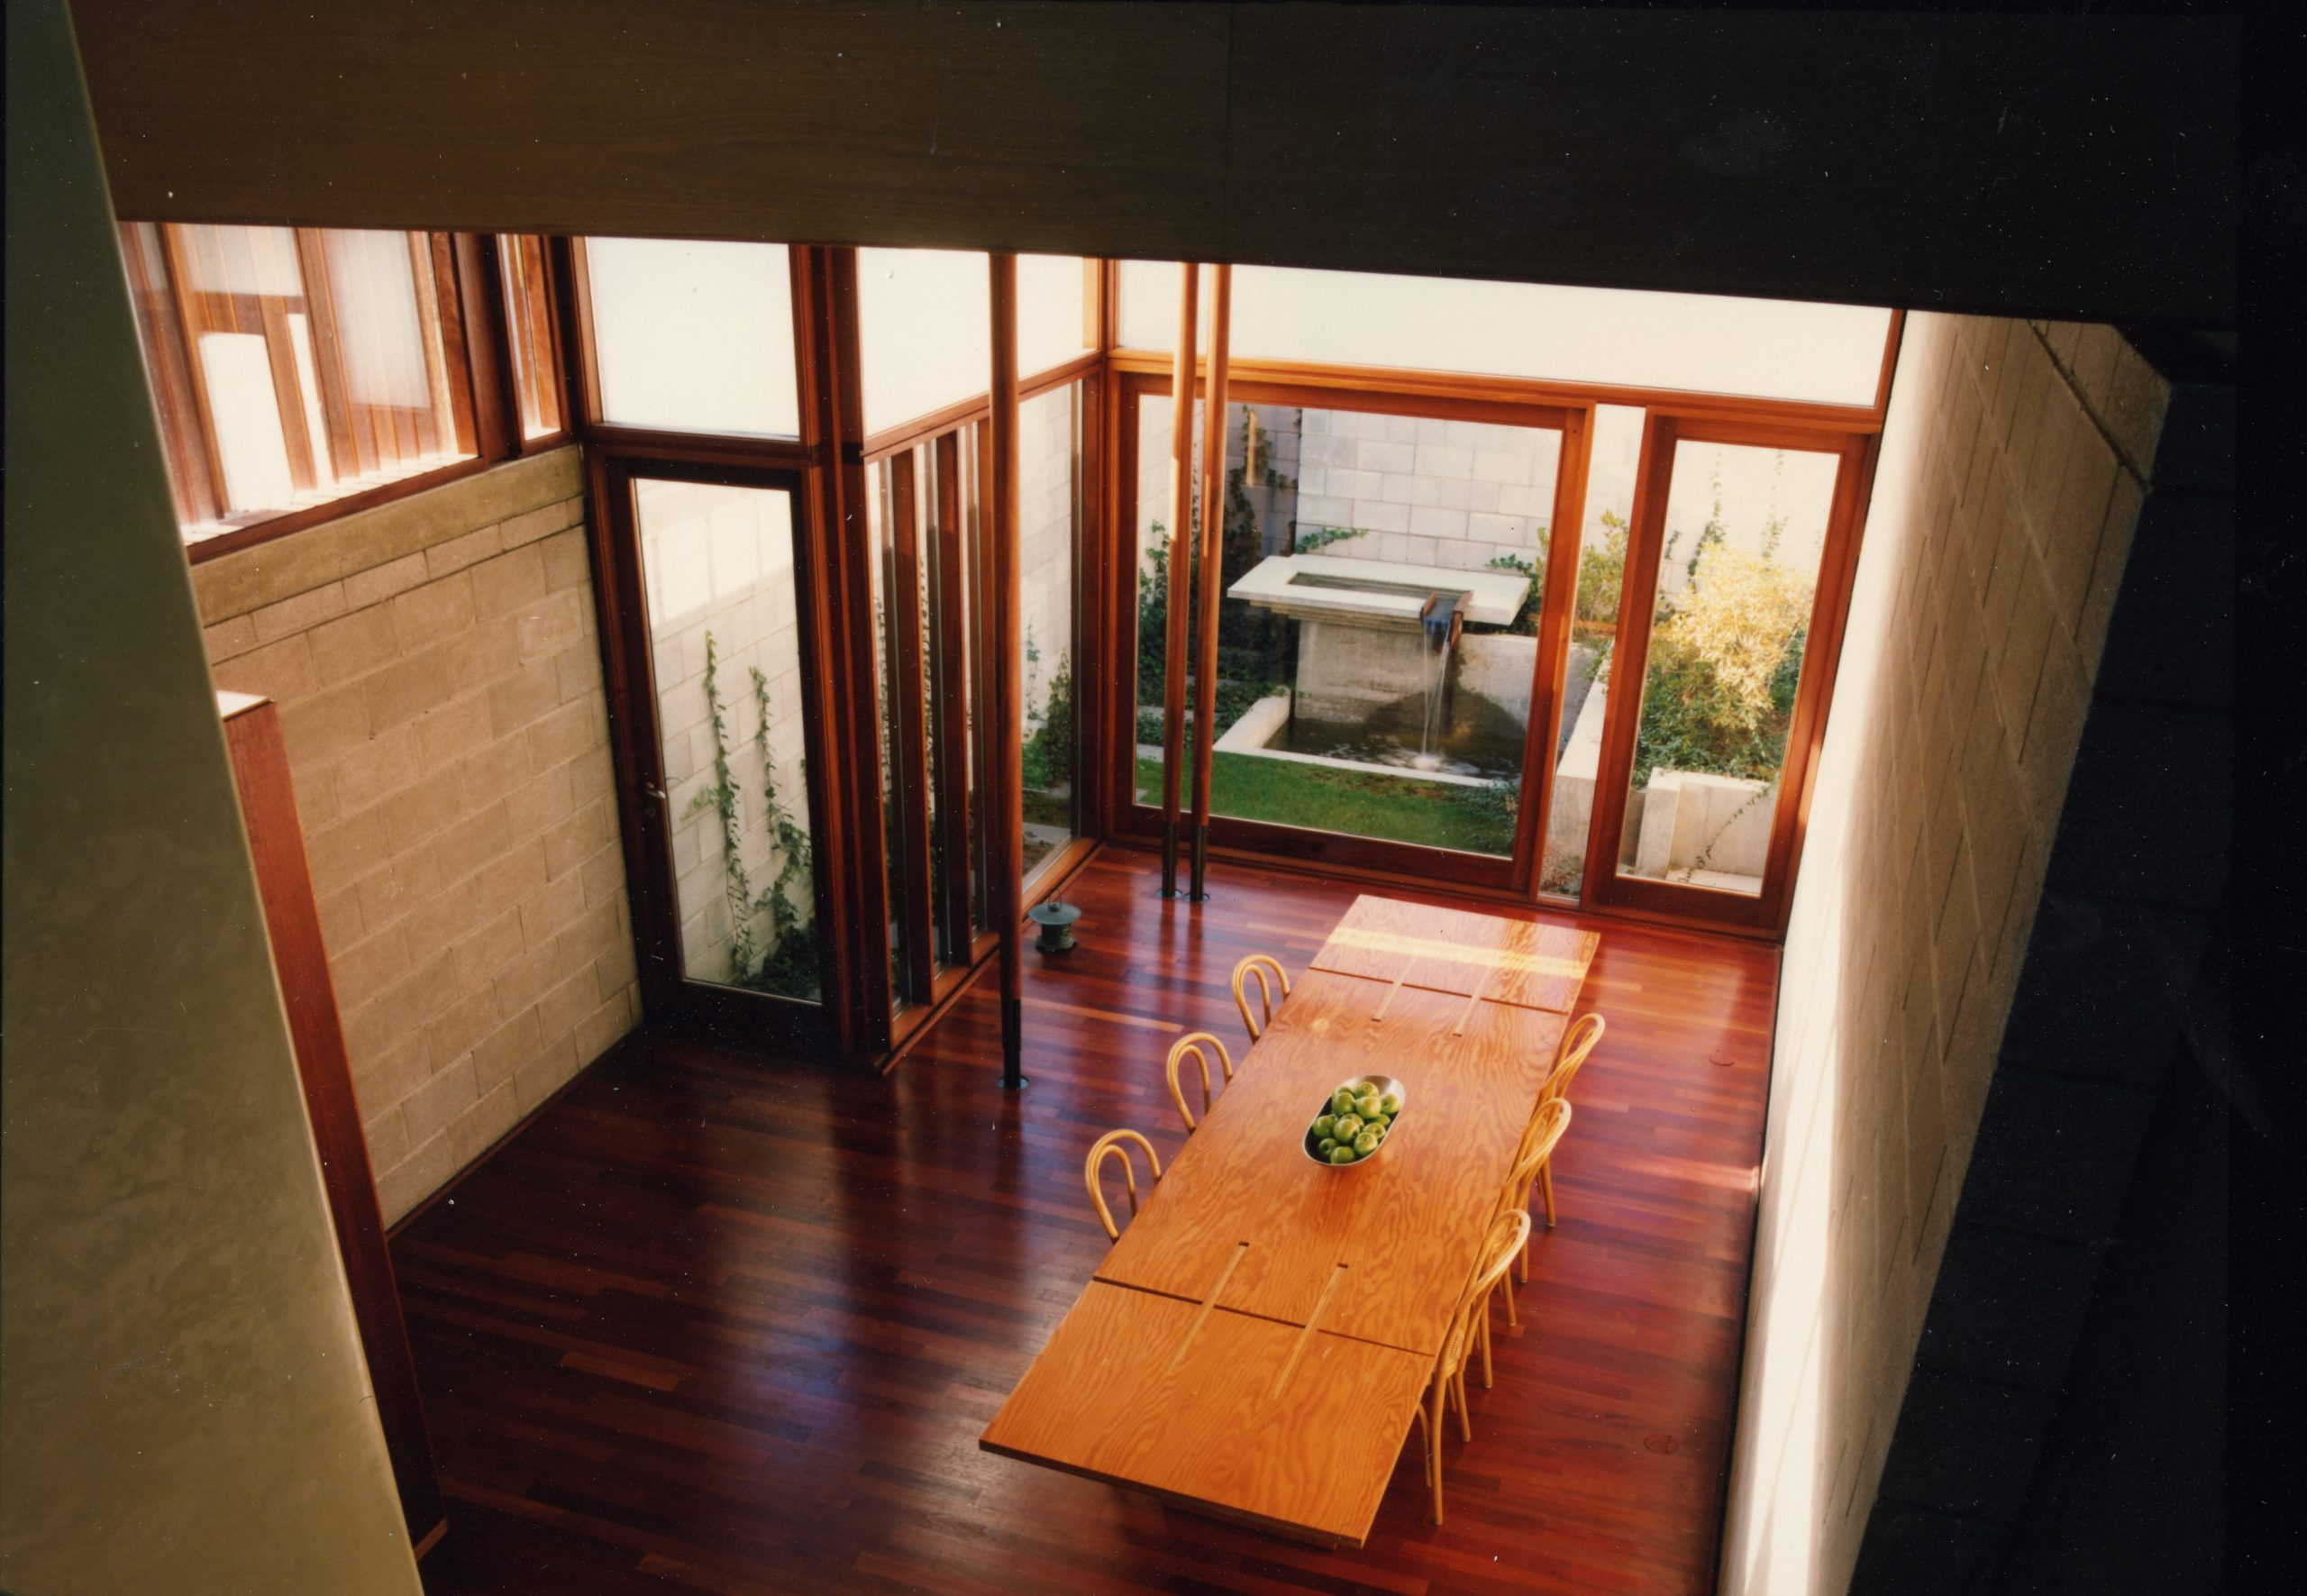 Interior view looking down to dining area